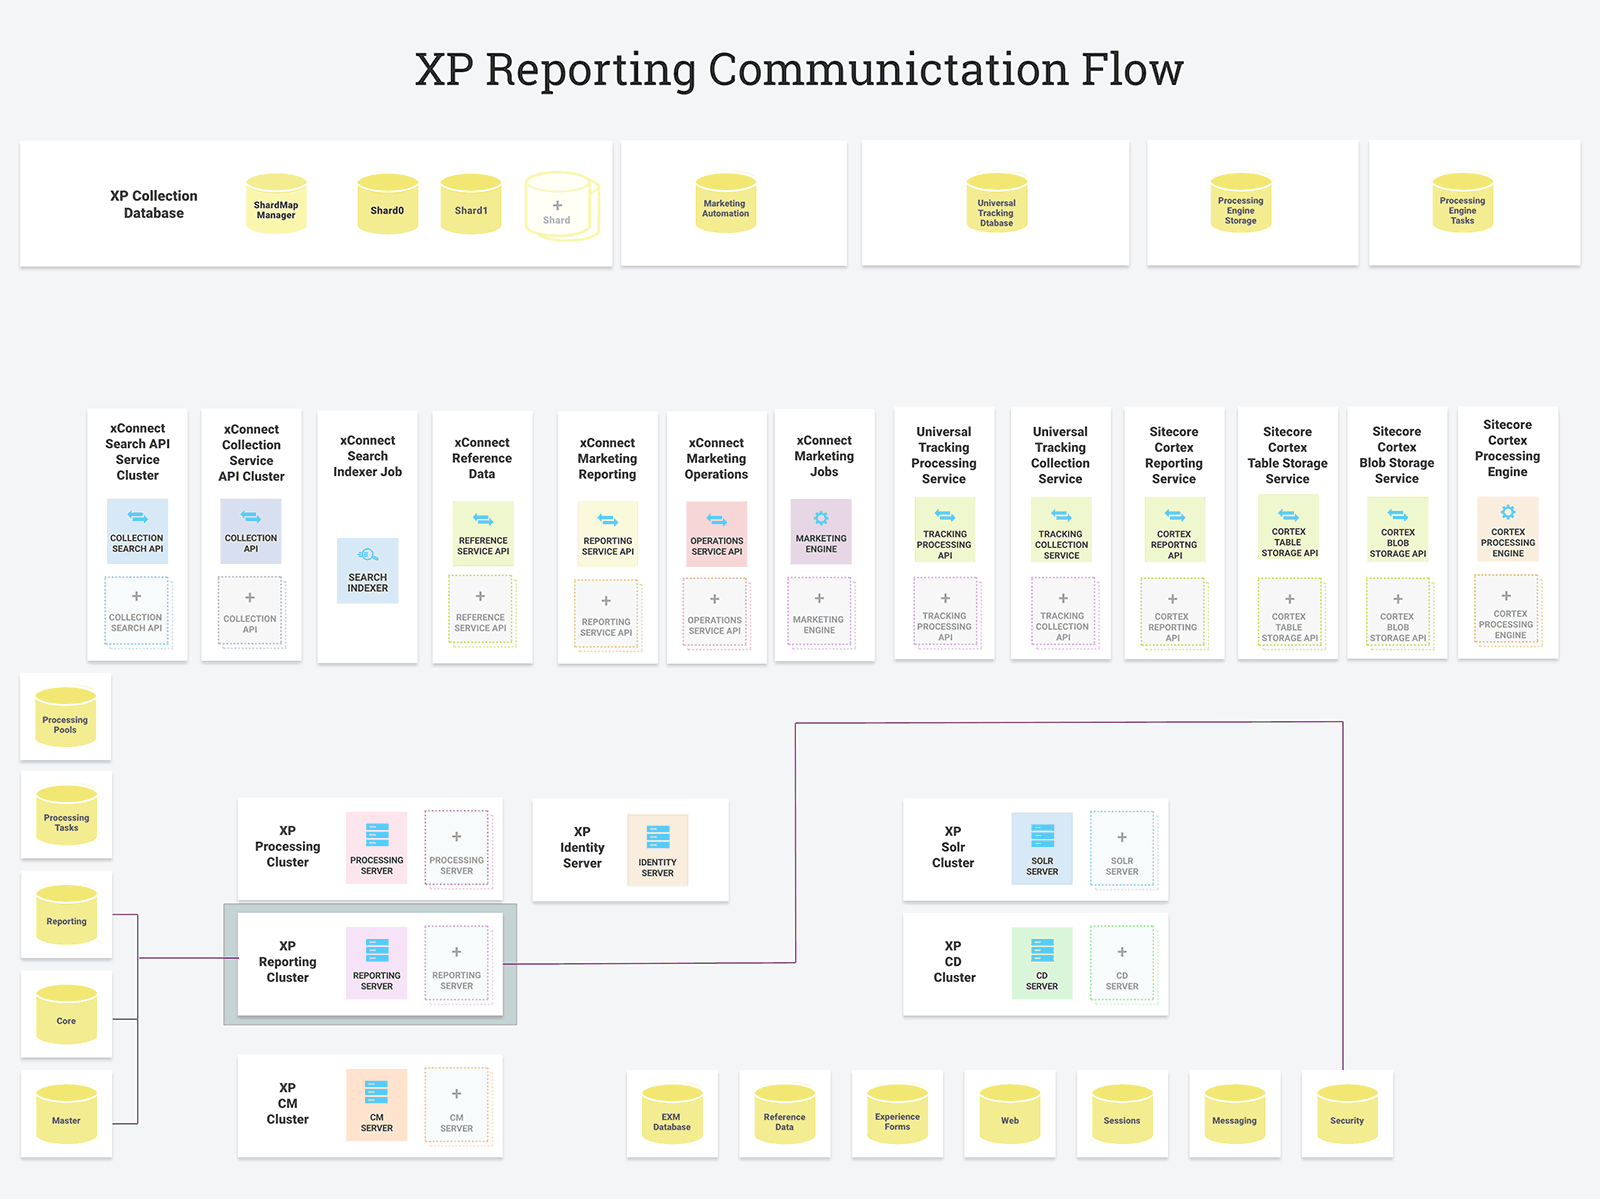 XP Reporting Communication Flow